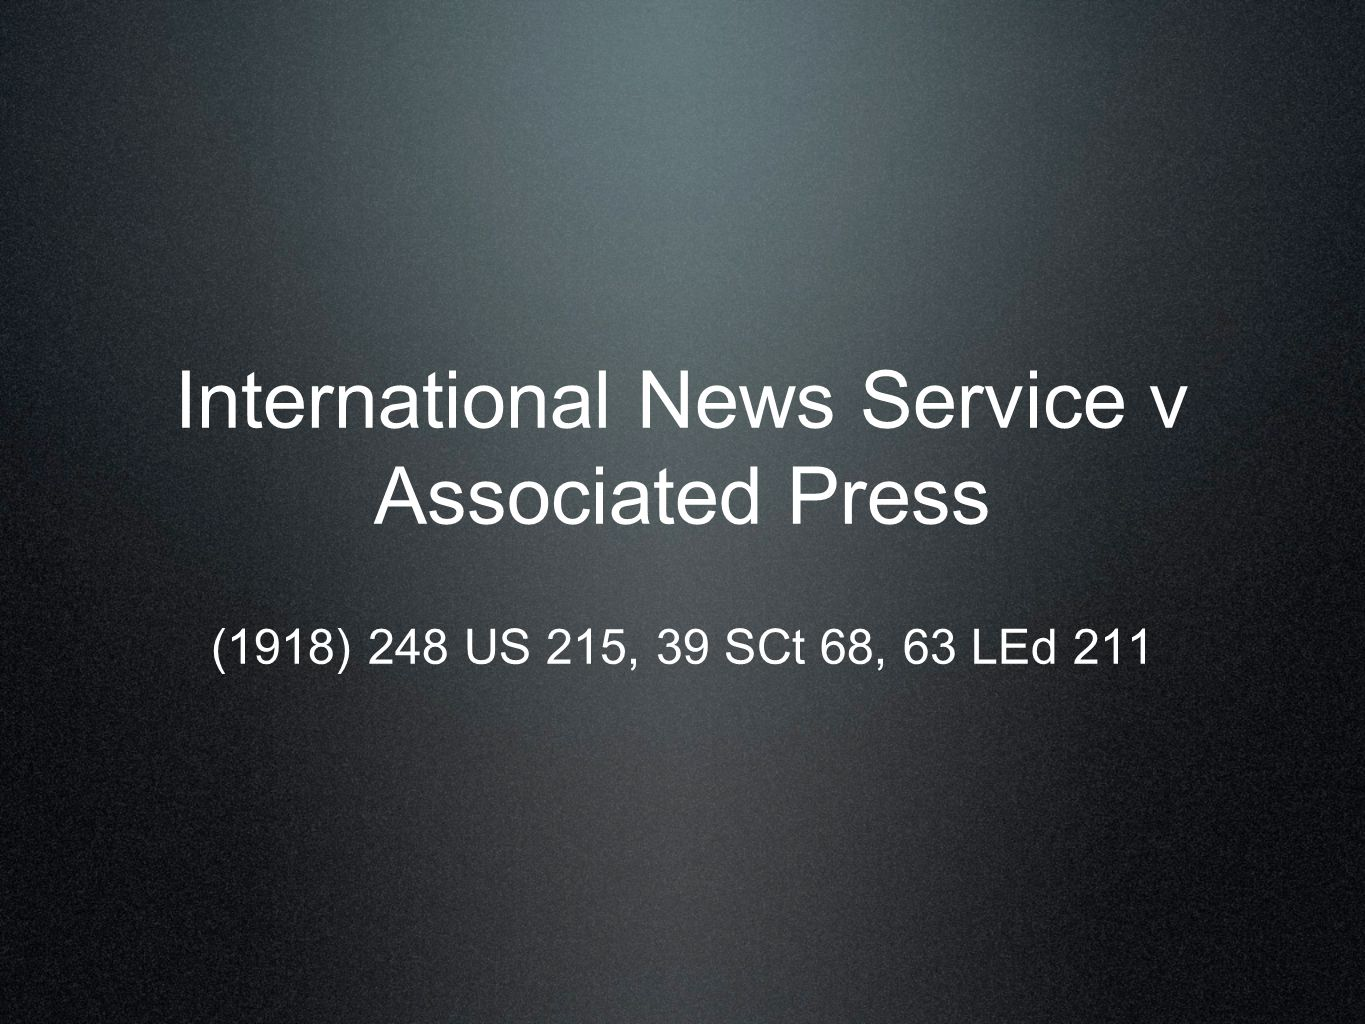 A quick summary 'INS would take AP's hot news stories about World War I battles from publicly distributed New York newspapers that subscribed to the AP service.